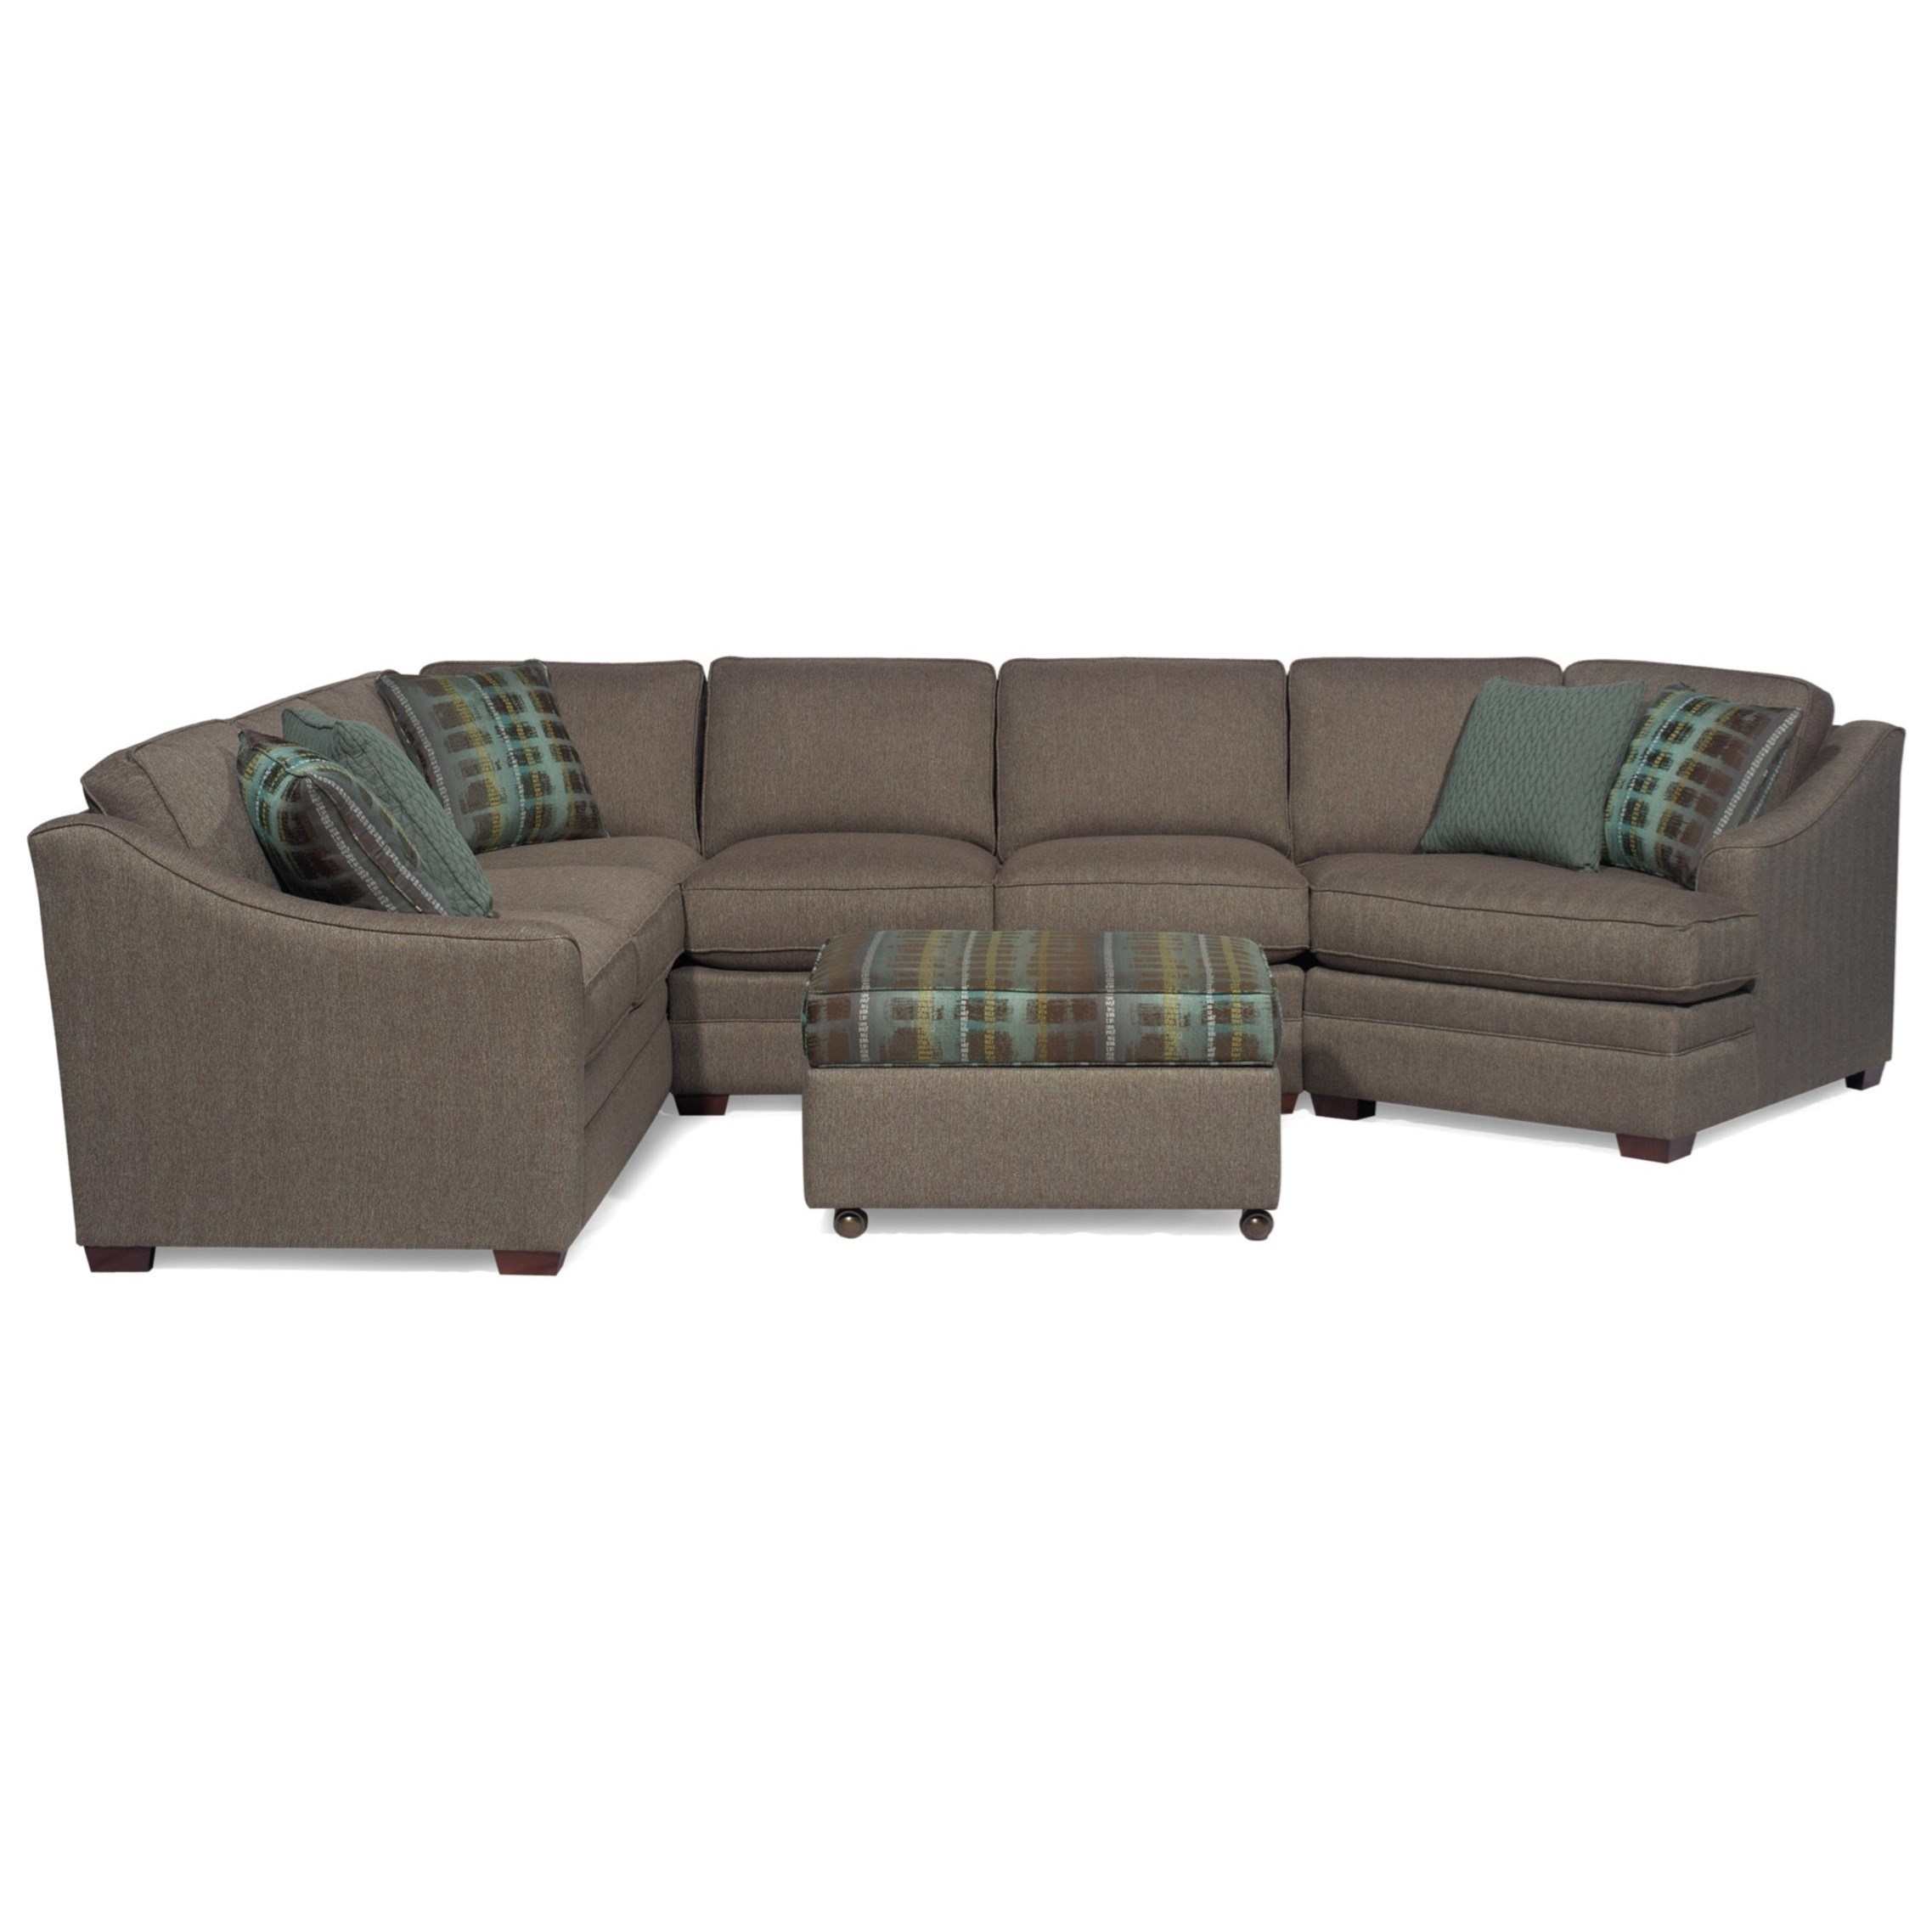 Craftmaster F9 Custom Collection <B>Customizable</b> 3-Piece in Blaine 3 Piece Sectionals (Image 13 of 30)